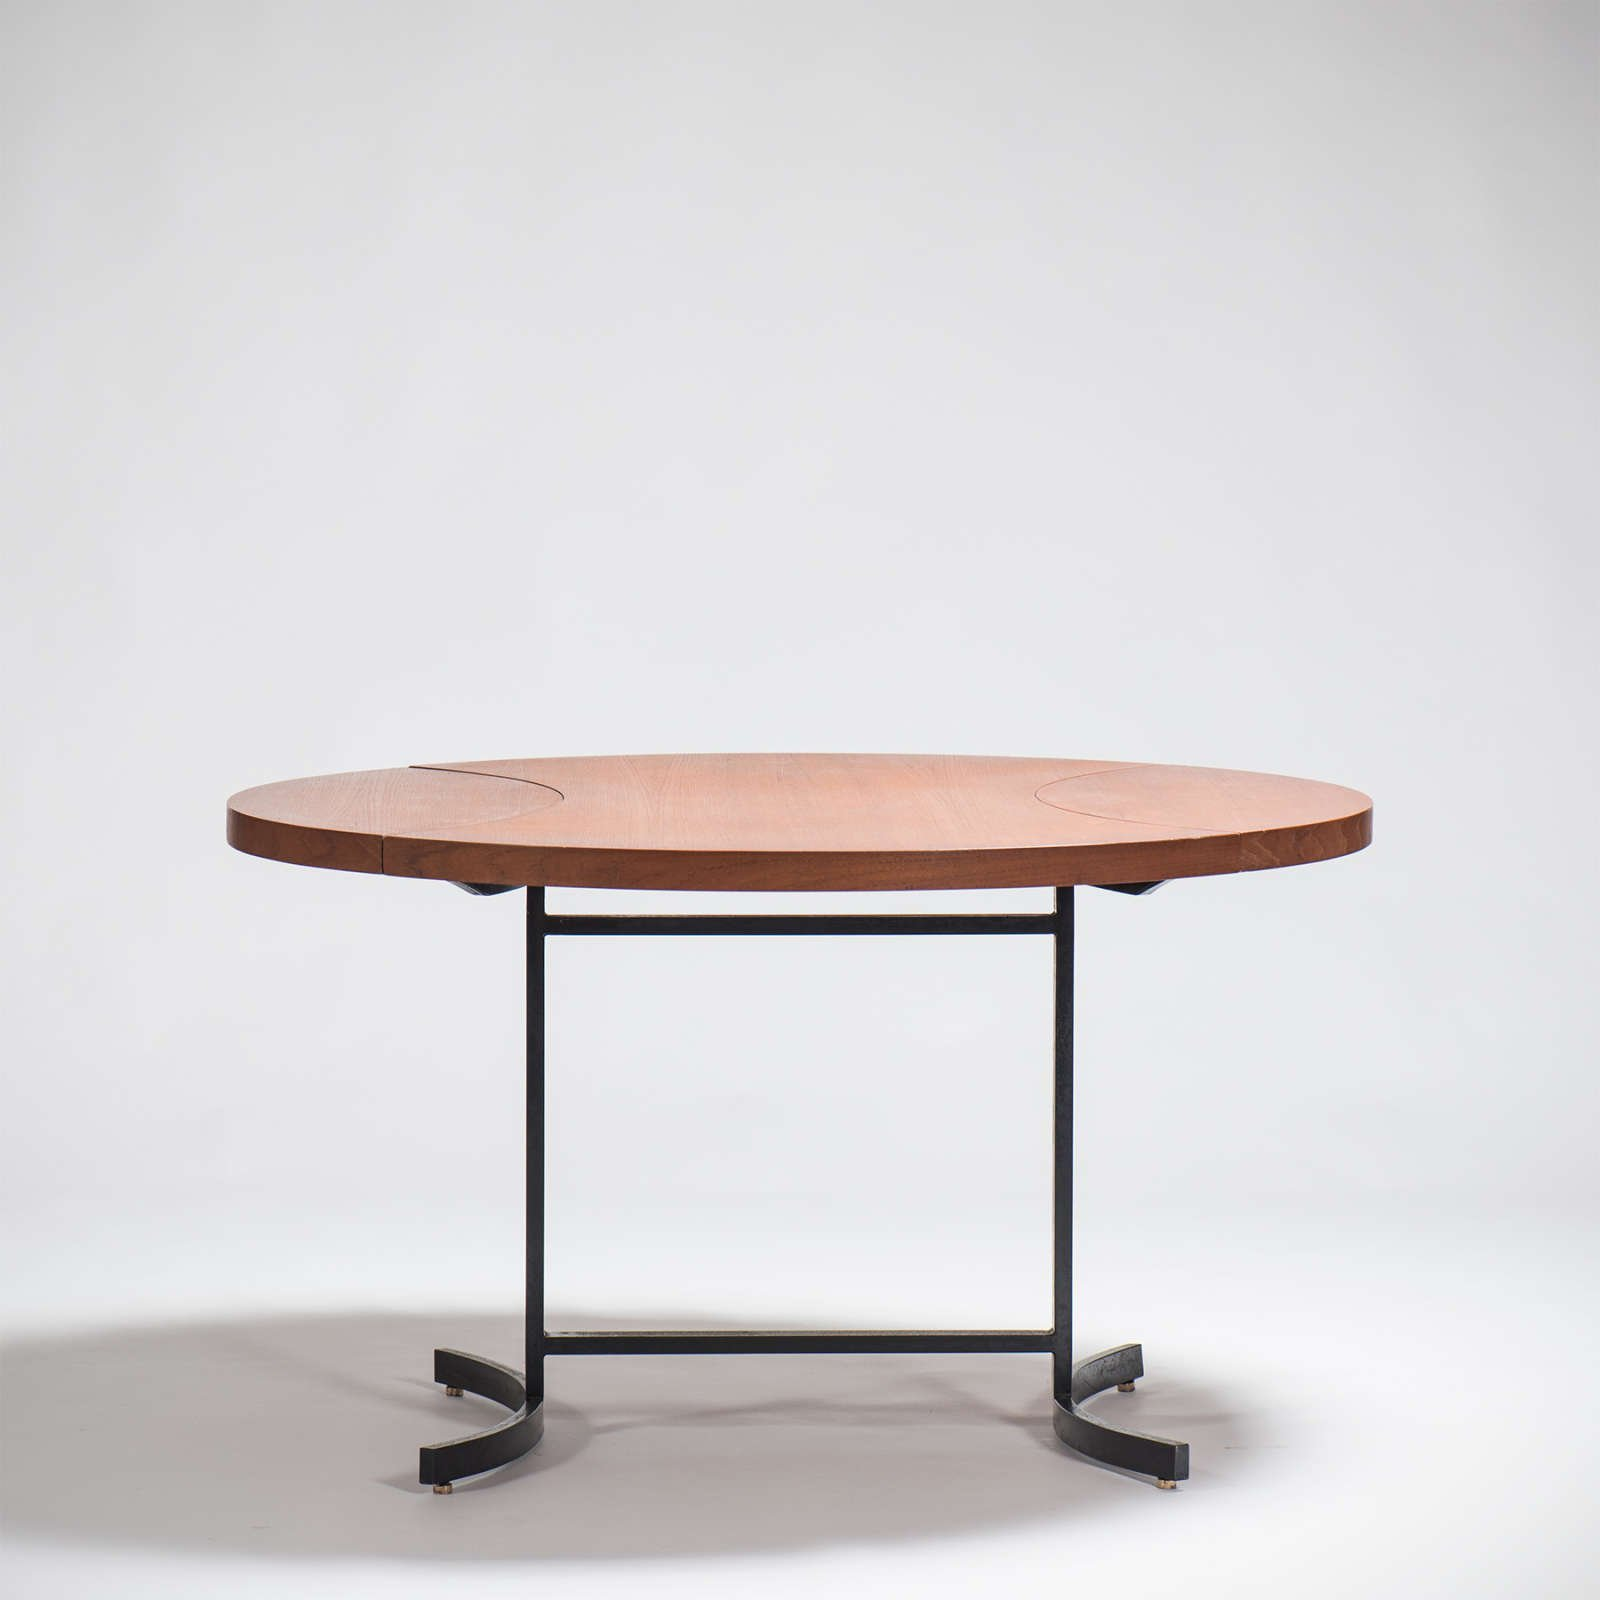 Paolo Tilche |  Round folding table